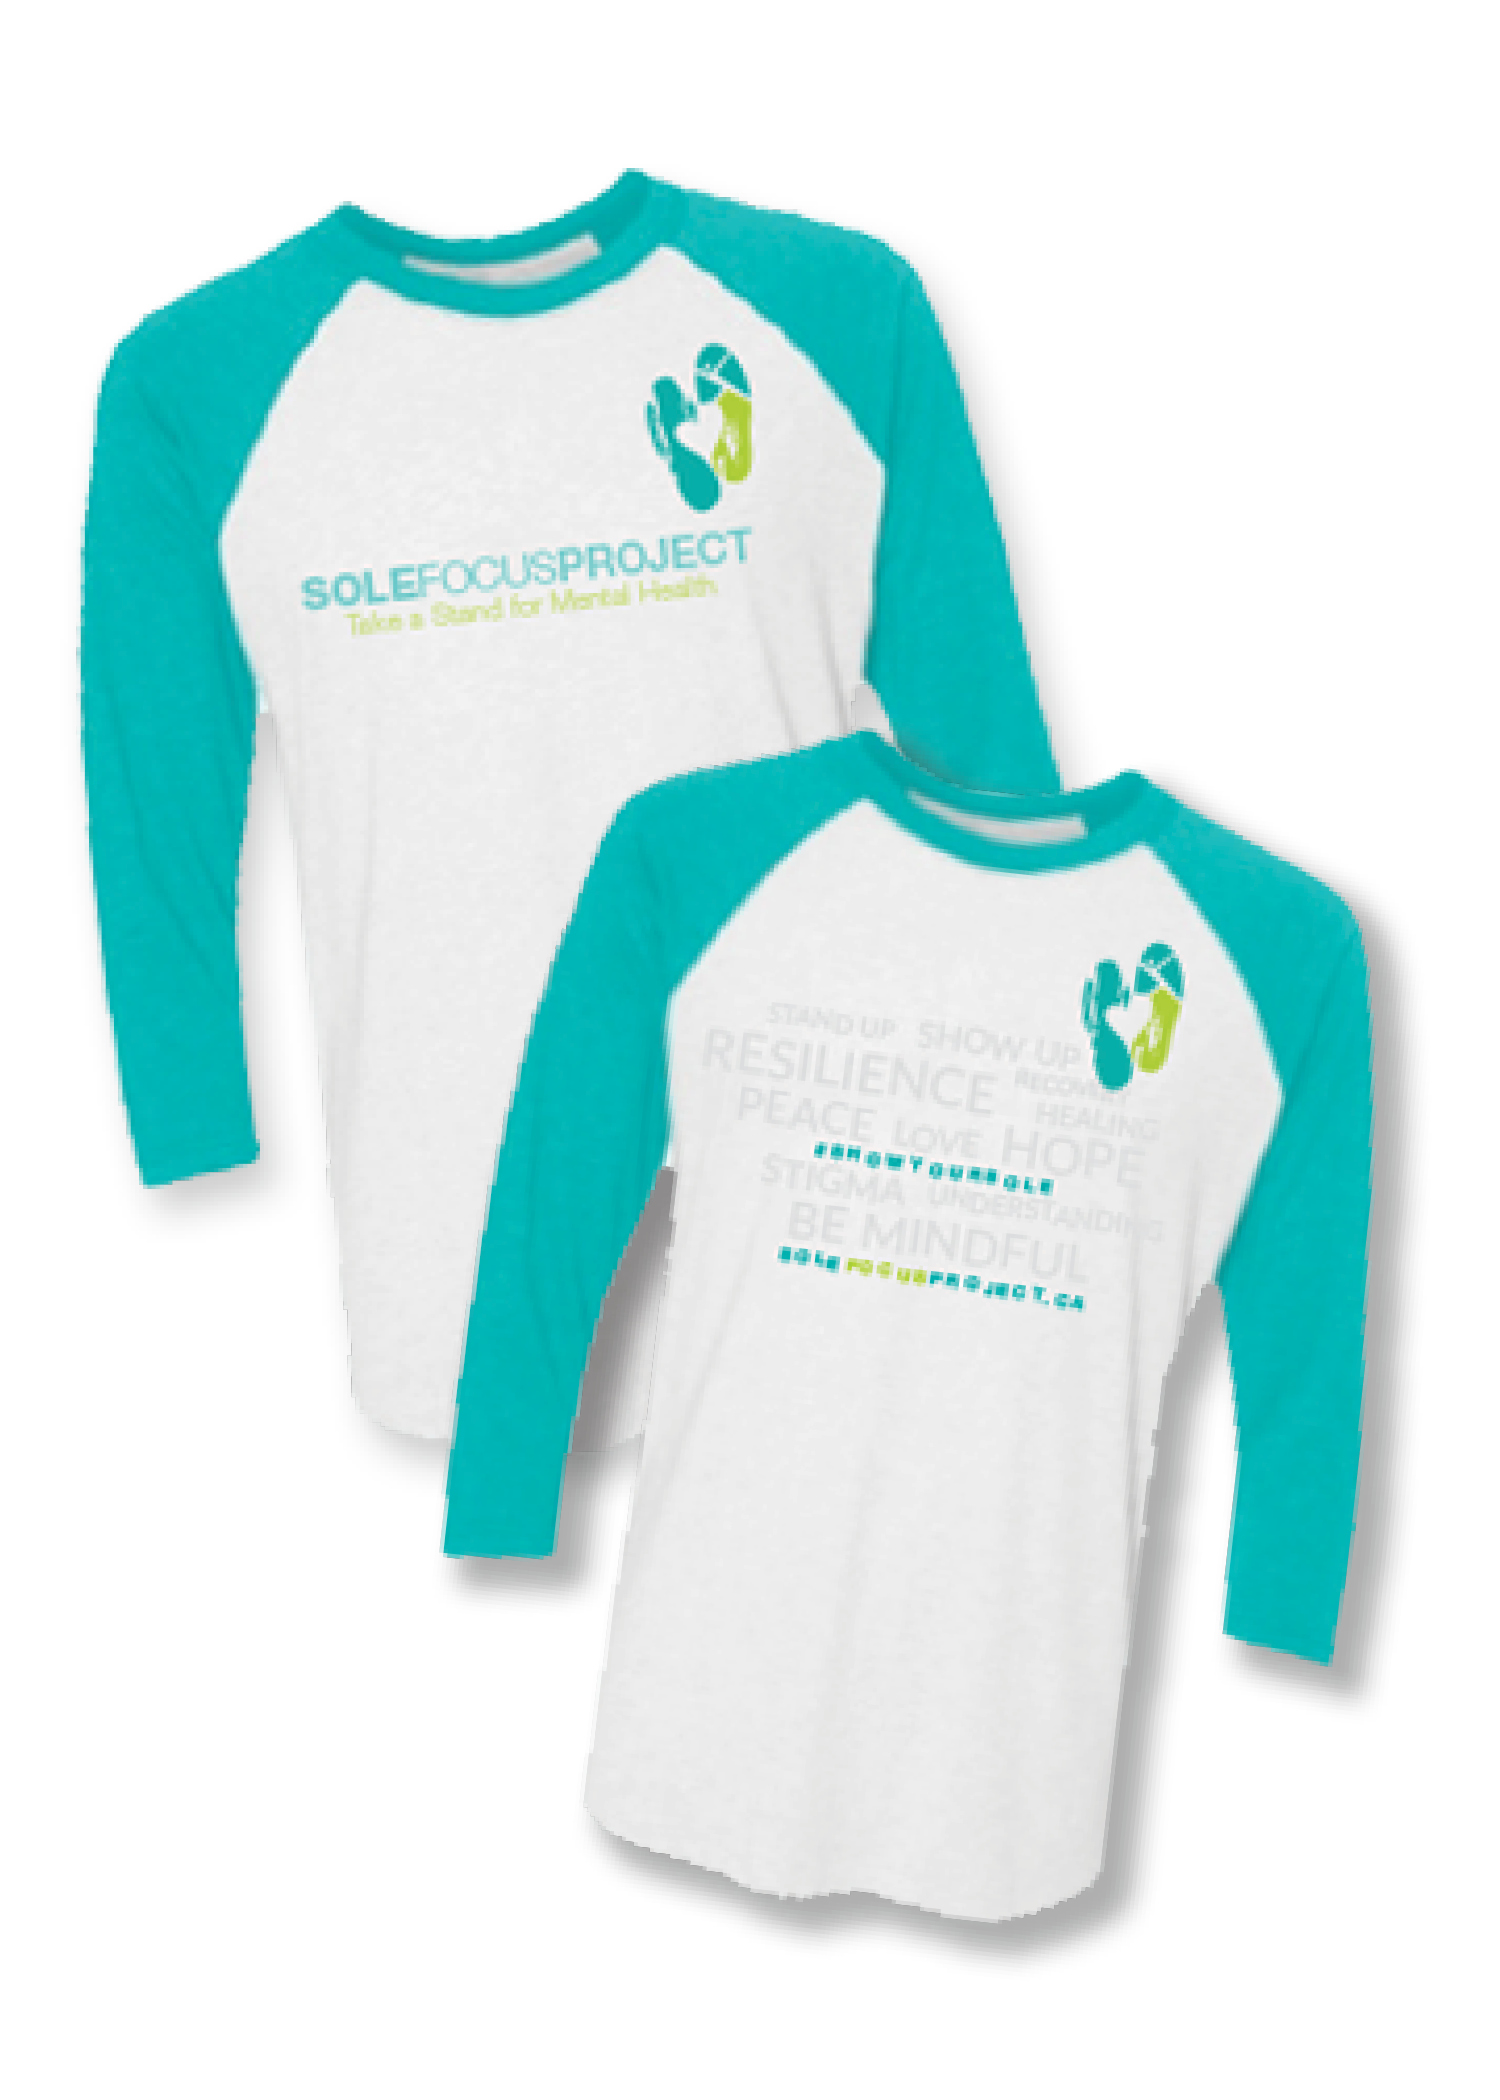 Sole Focus Project Shirts